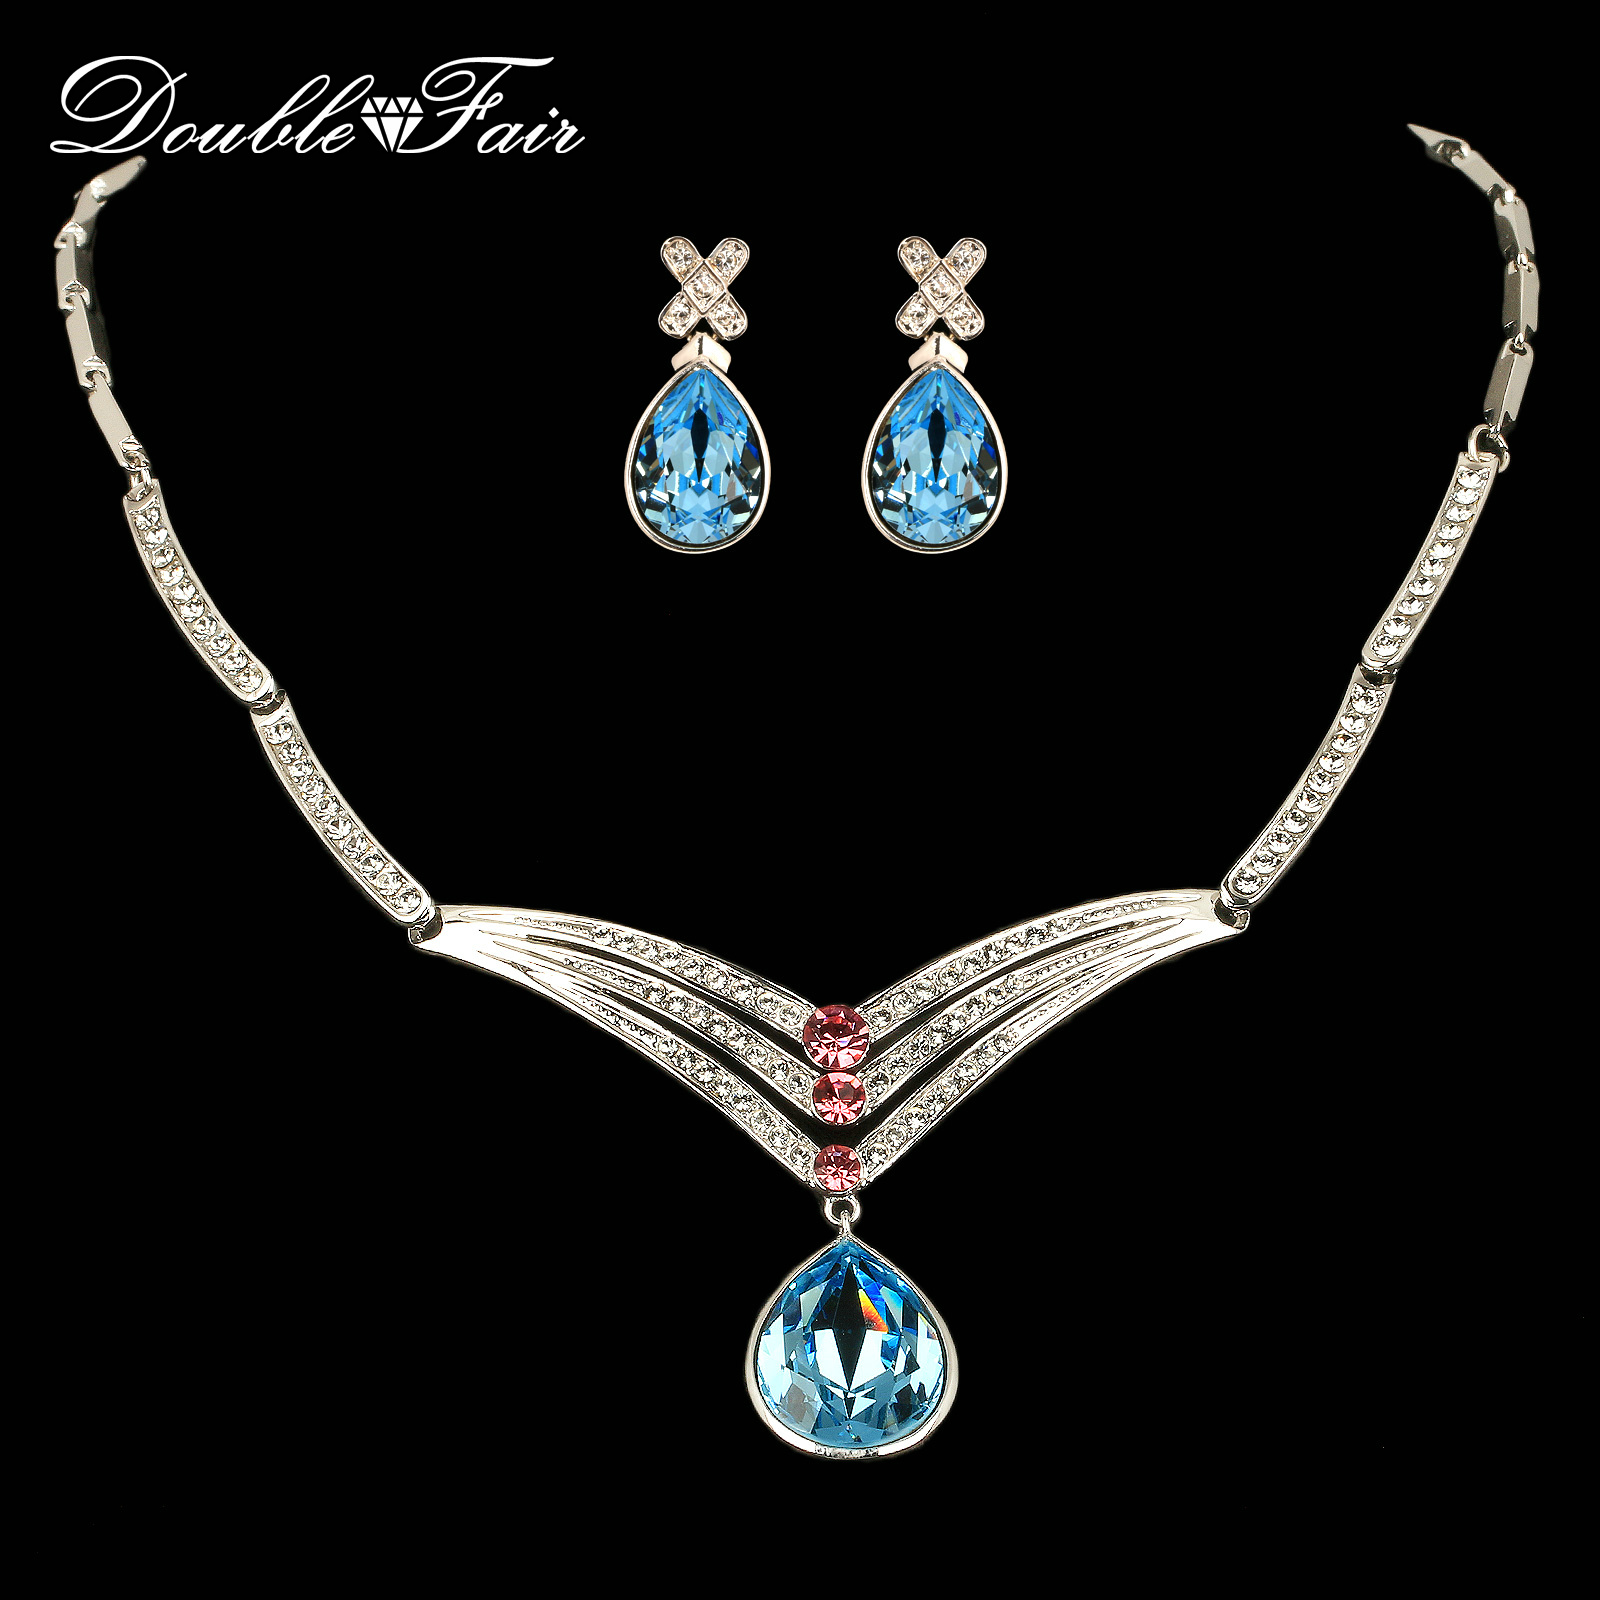 Big African Blue Crystal Necklaces & Pendant Earrings Sets Wholesale Crystal Fashion Wedding Jewelry for Women DFS310 pair of dazzling crystal pendant alloy earrings for women